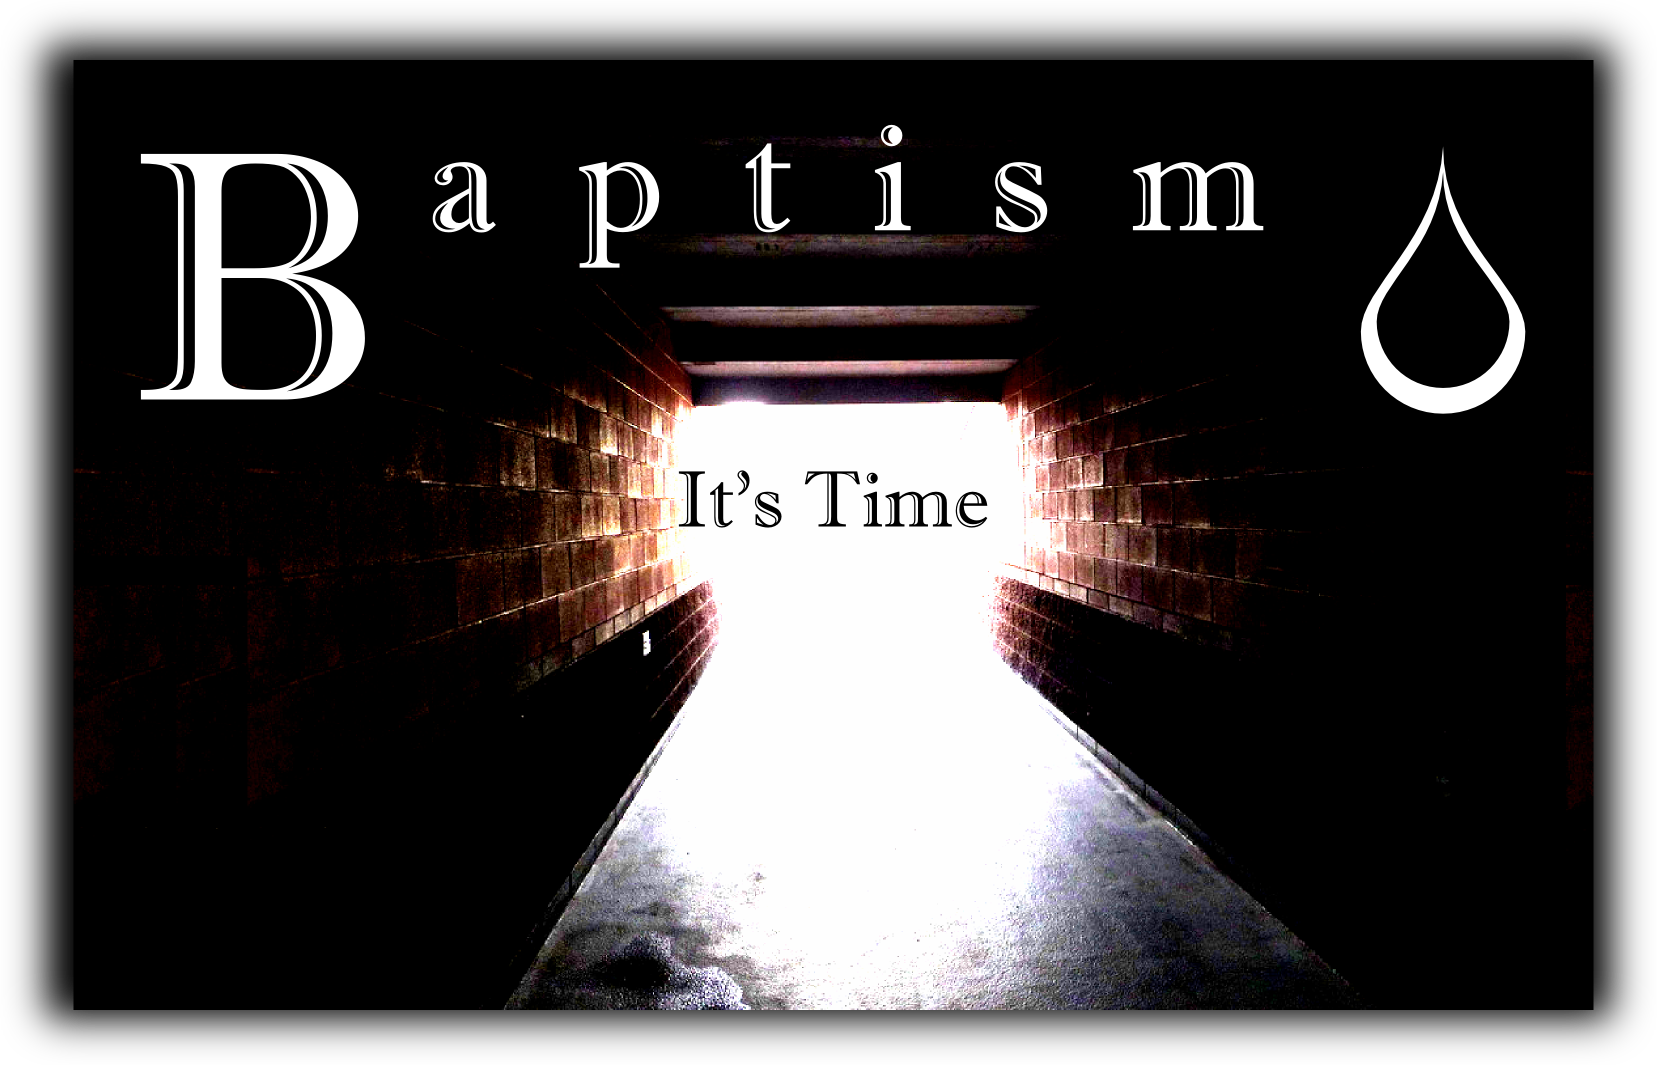 Baptism: It's Time